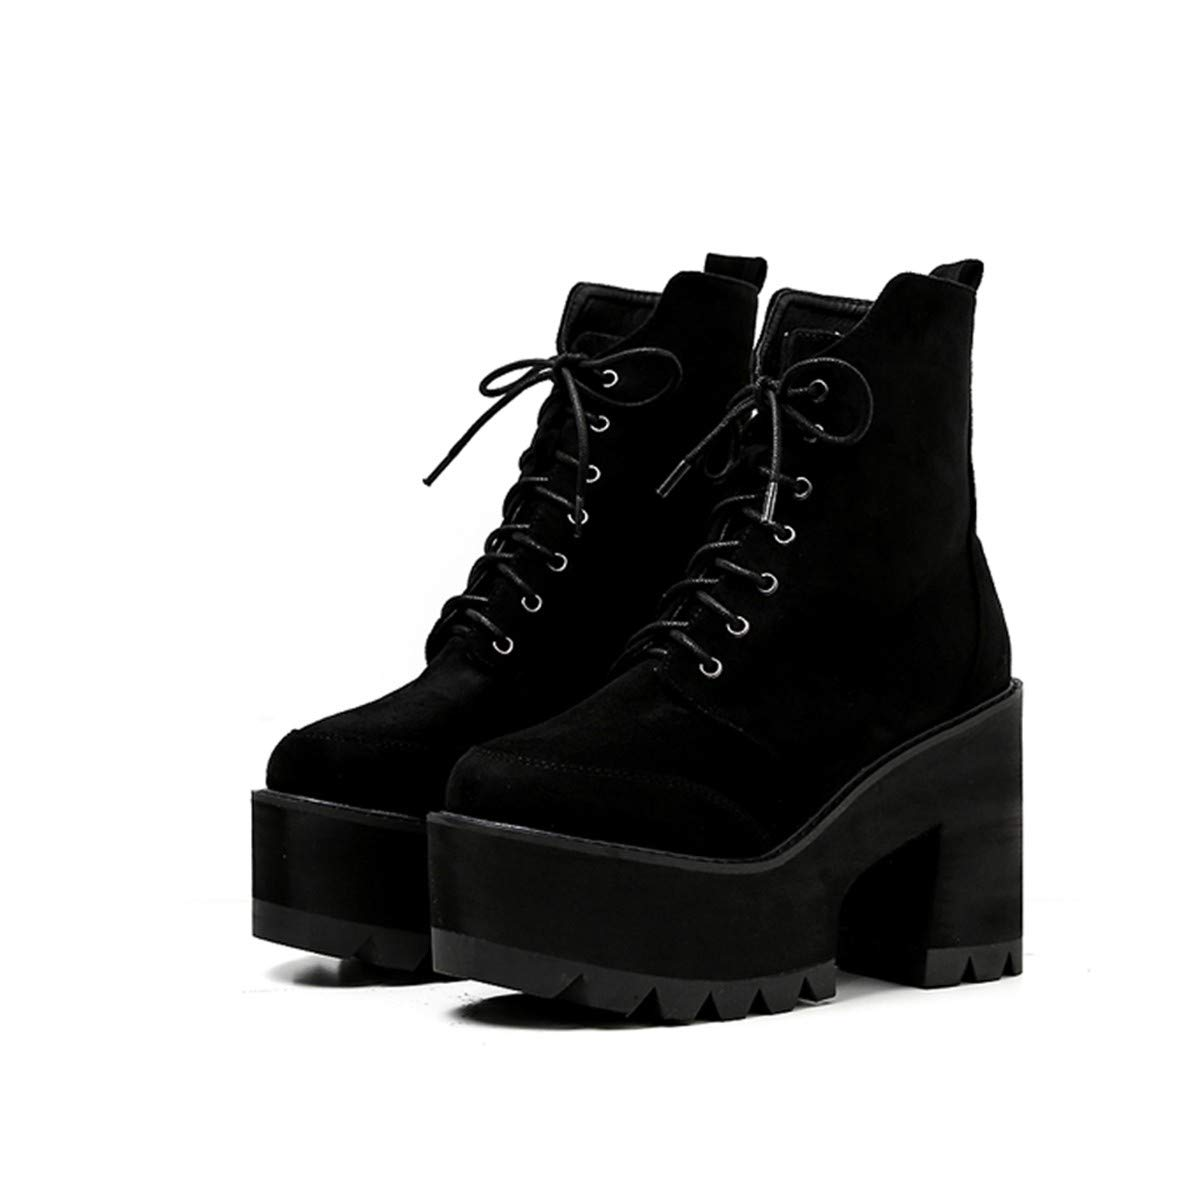 SIKESONG Bottes Femmes Chaussures Punk Automne Bottes Talons Hauts Chaussures Hiver Hiver Chaussures Neige Bottes Moto Dentelle Femmes Chaussures 7.5|Black c7f890